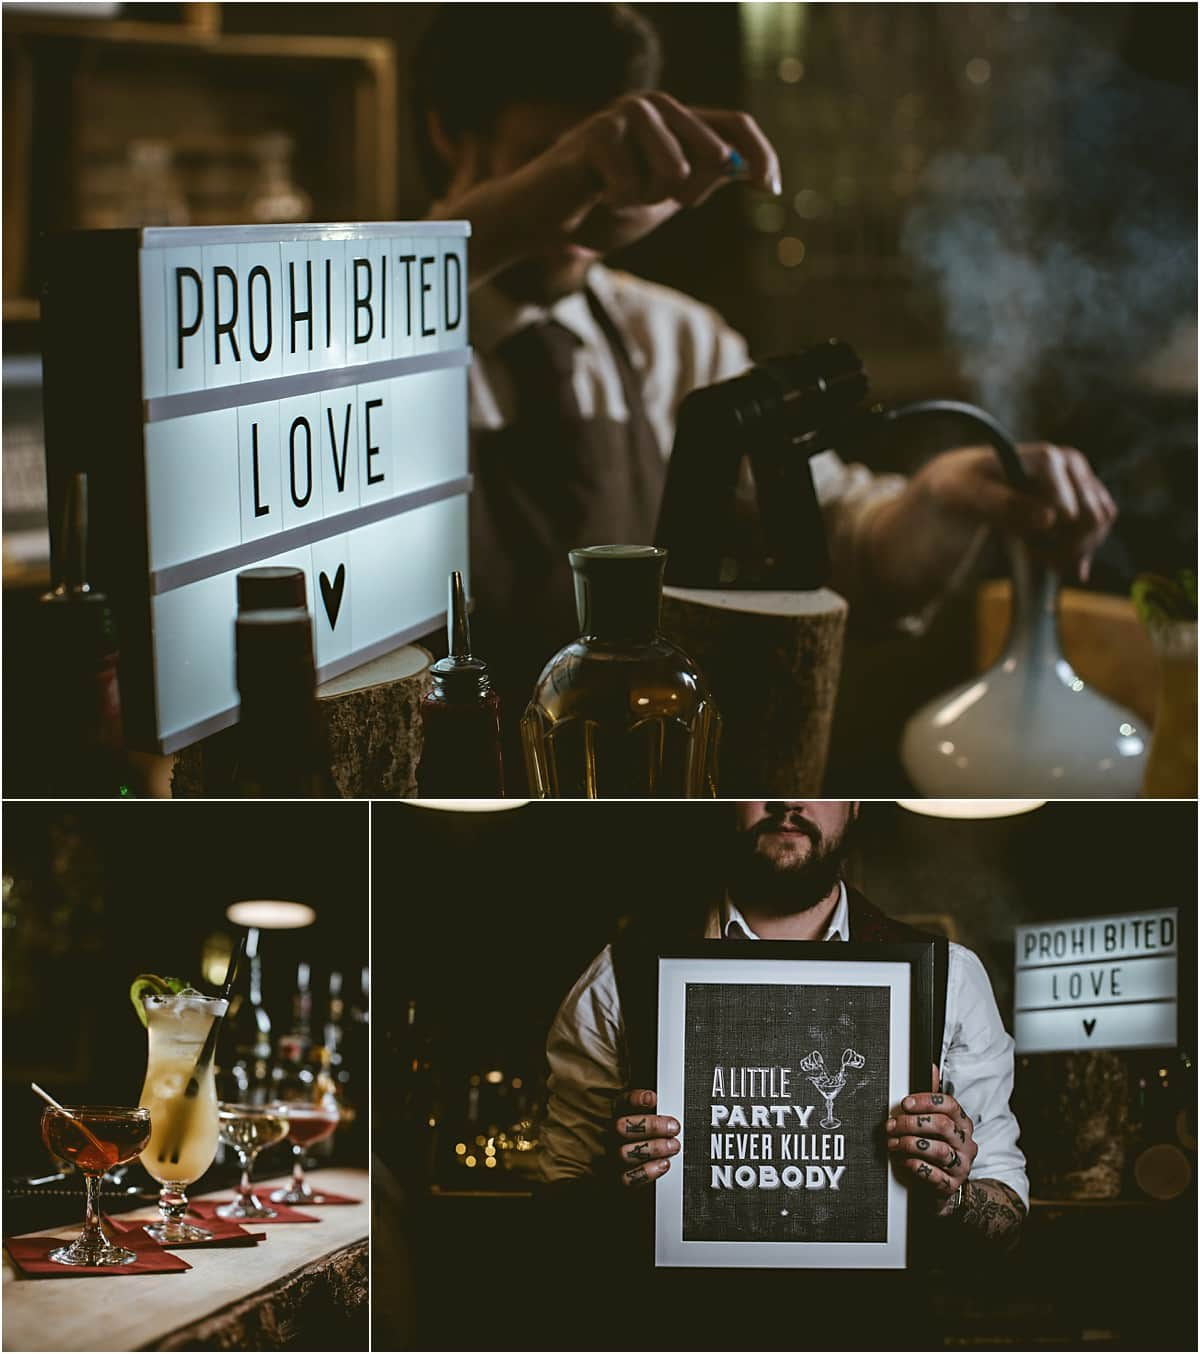 prohibited love wedding details